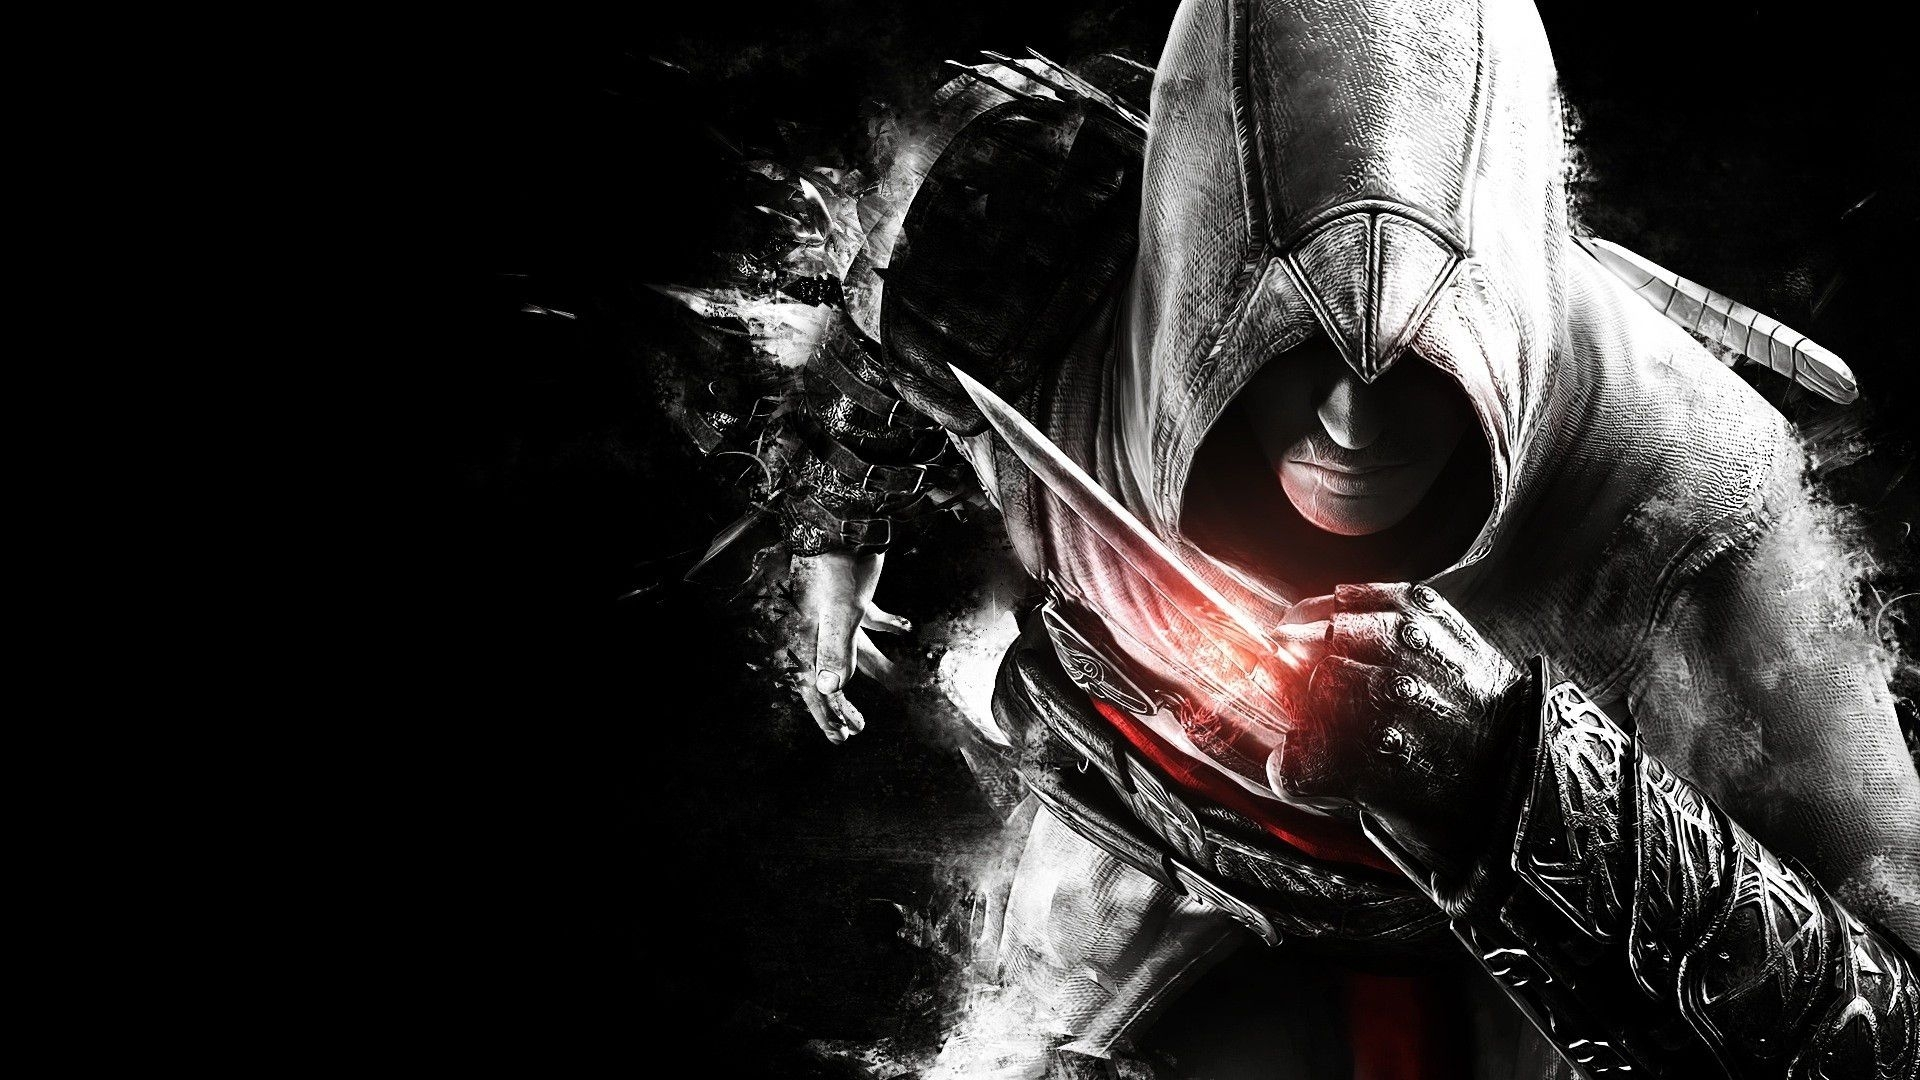 cool assassin's creed 4 wallpaper hd - http://imashon/w/cool